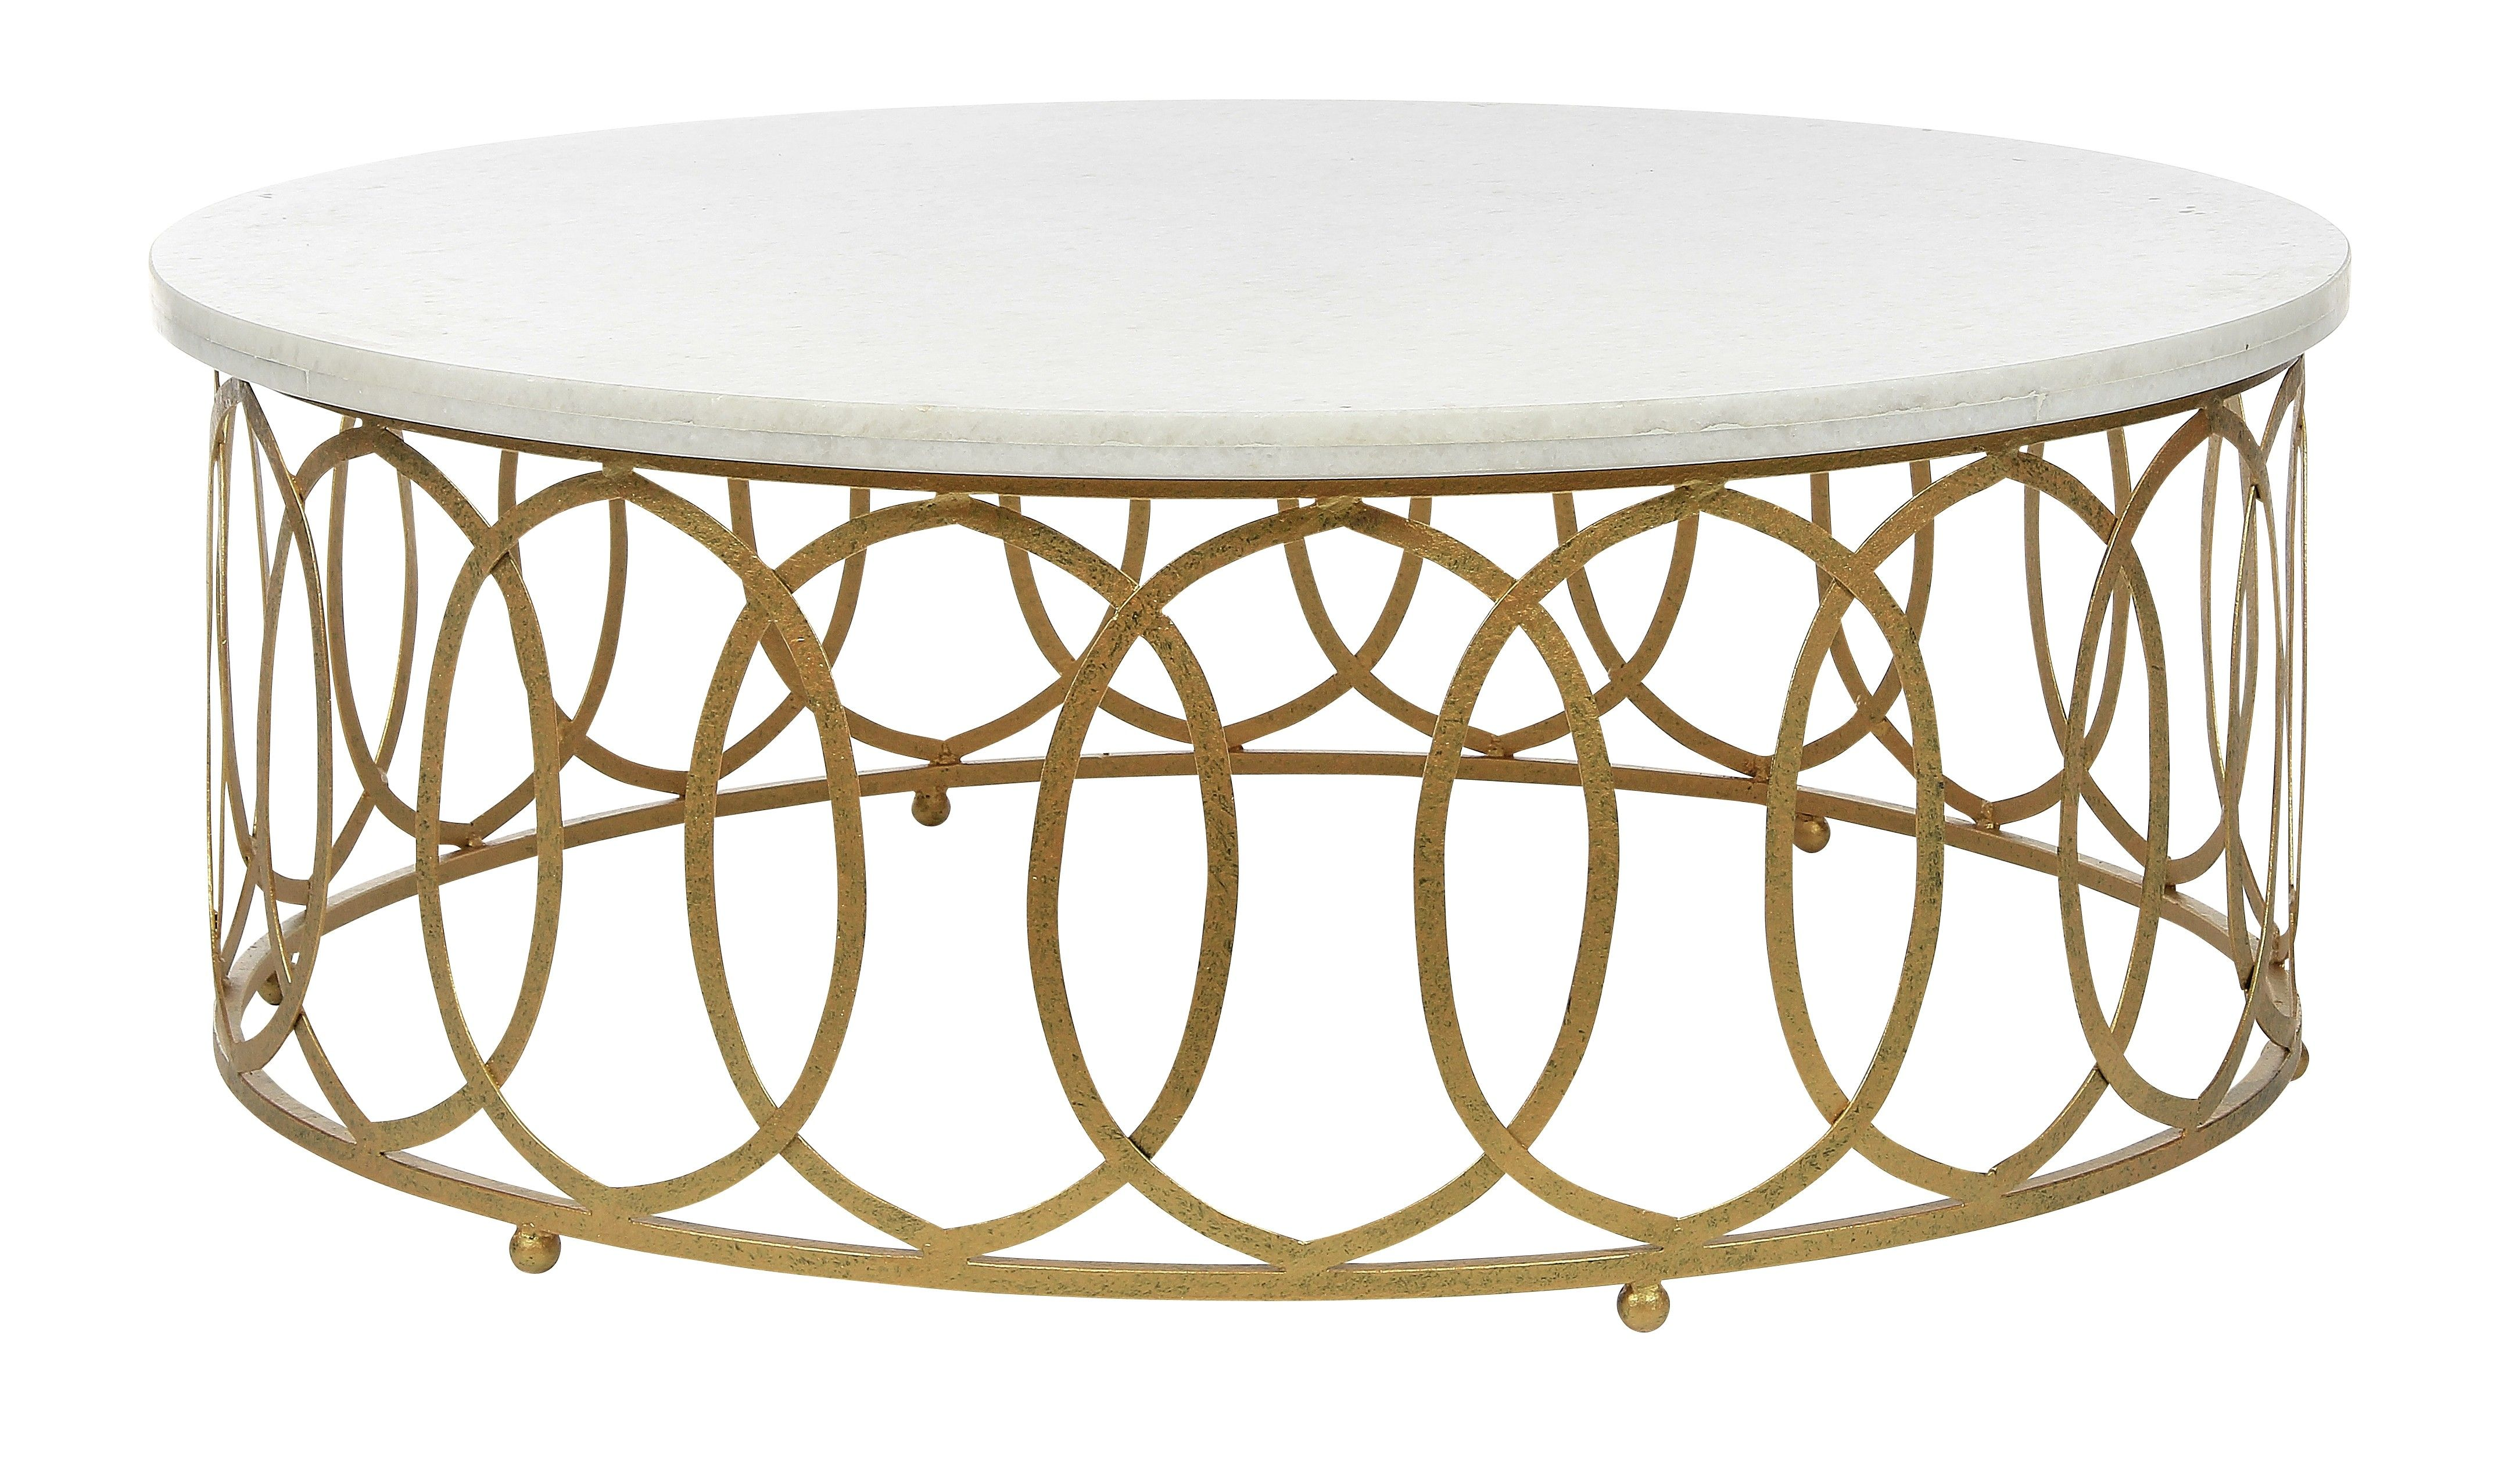 New Orleans Round Coffee Table 48 Br Shown In Gilded Gold